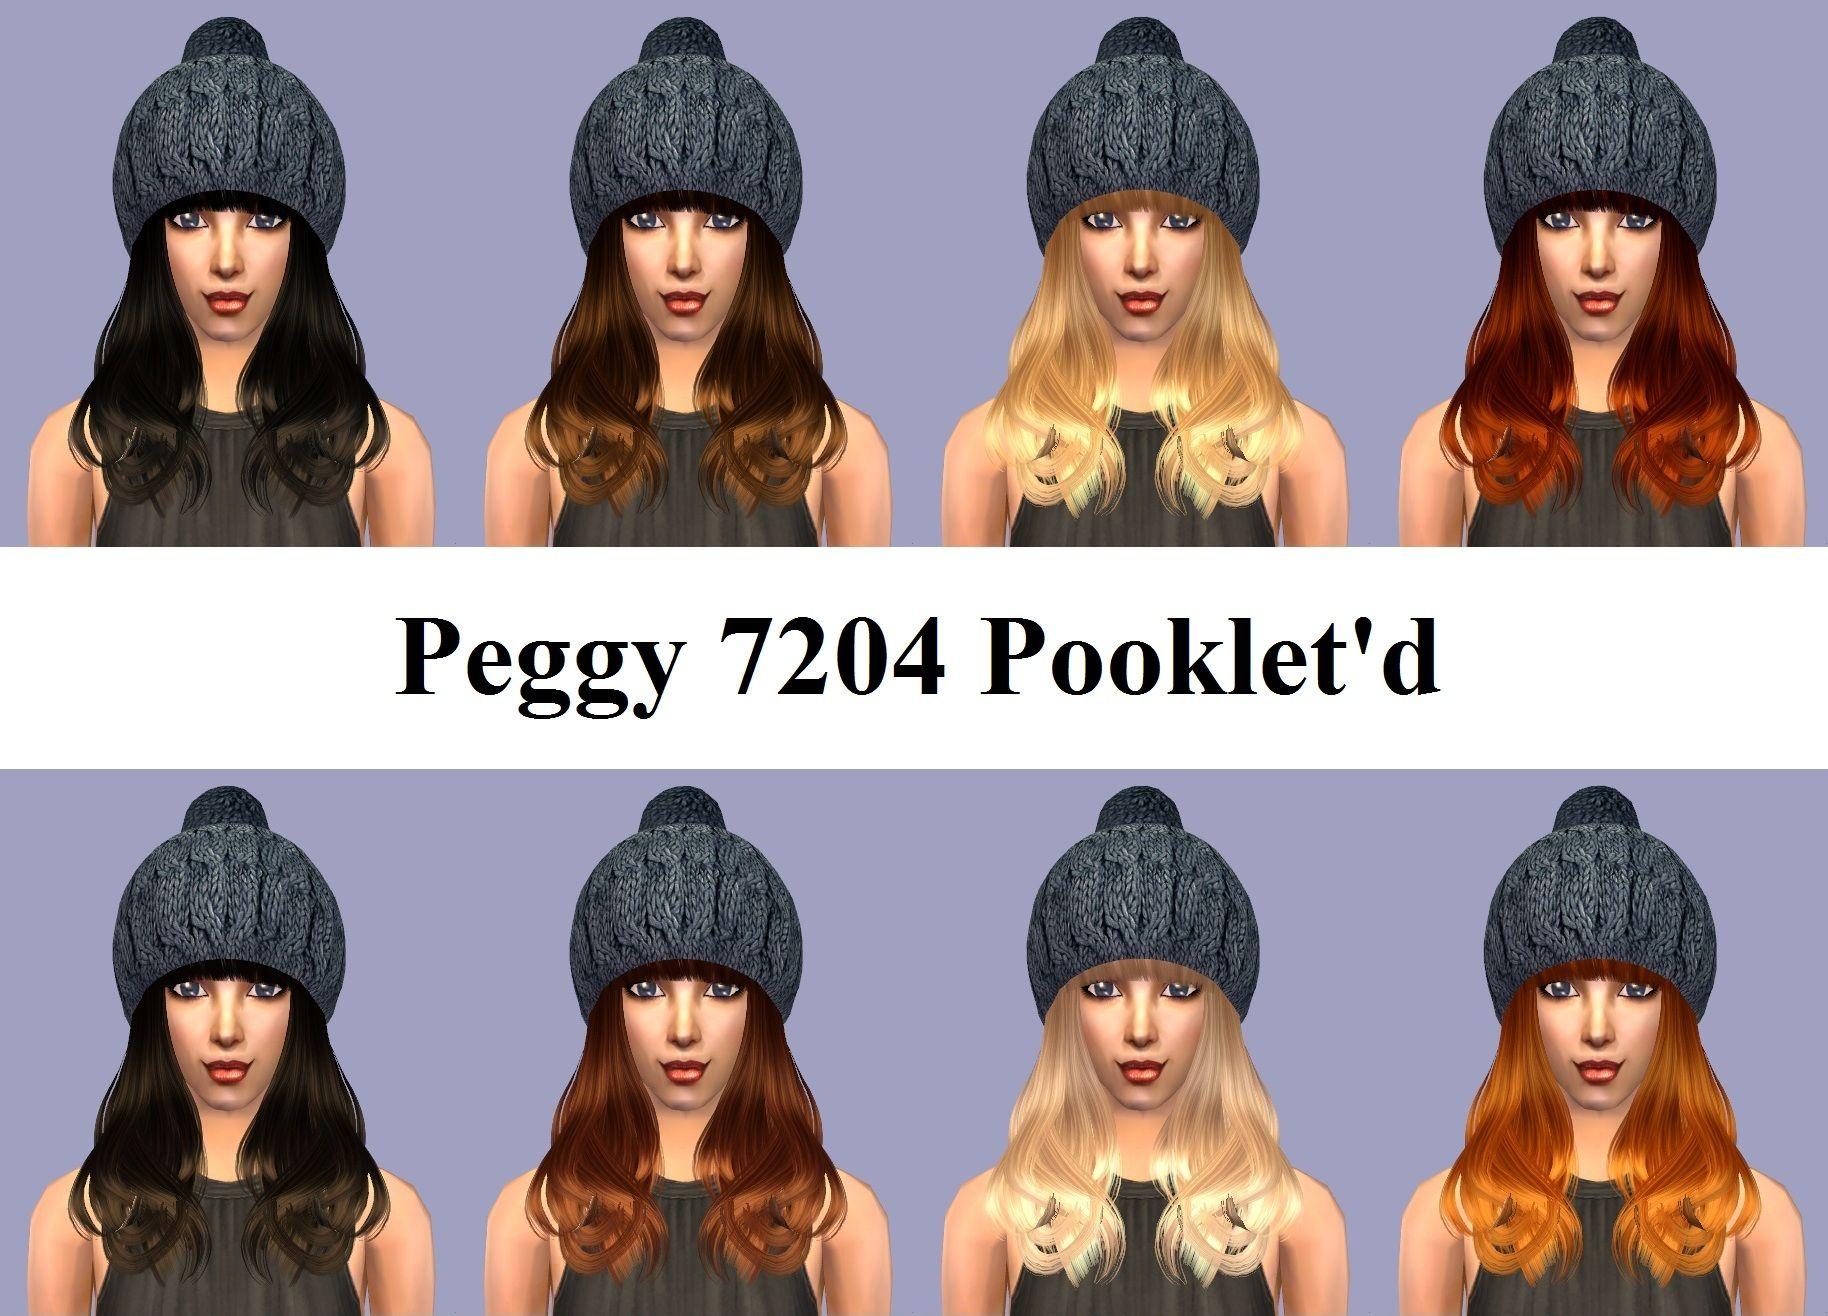 Mod The Sims - Peggy 7204 Pooklet'd